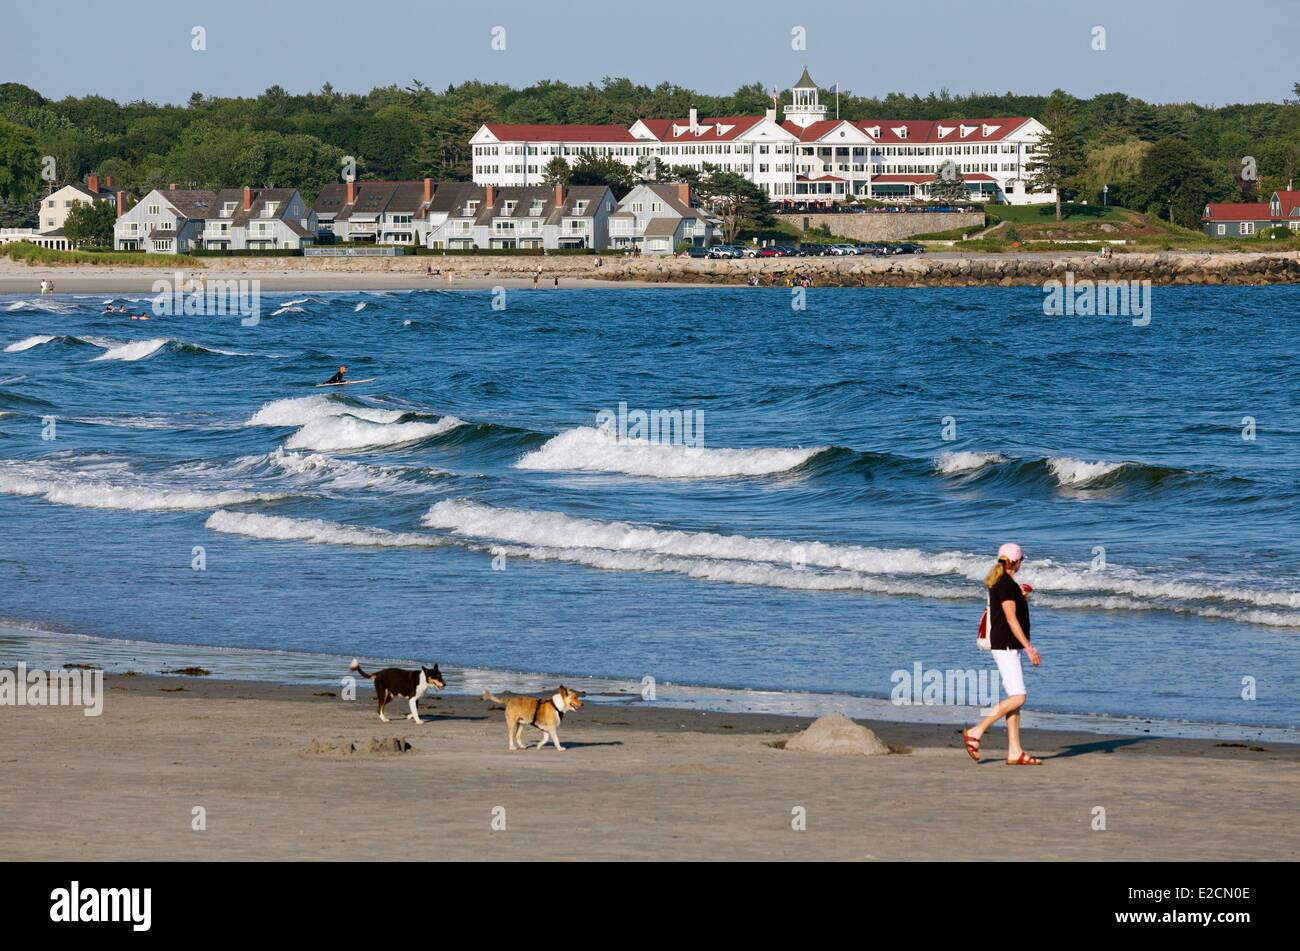 United States Maine Kennebunkport Kennebunk Beach the Colony Hotel in the background - Stock Image